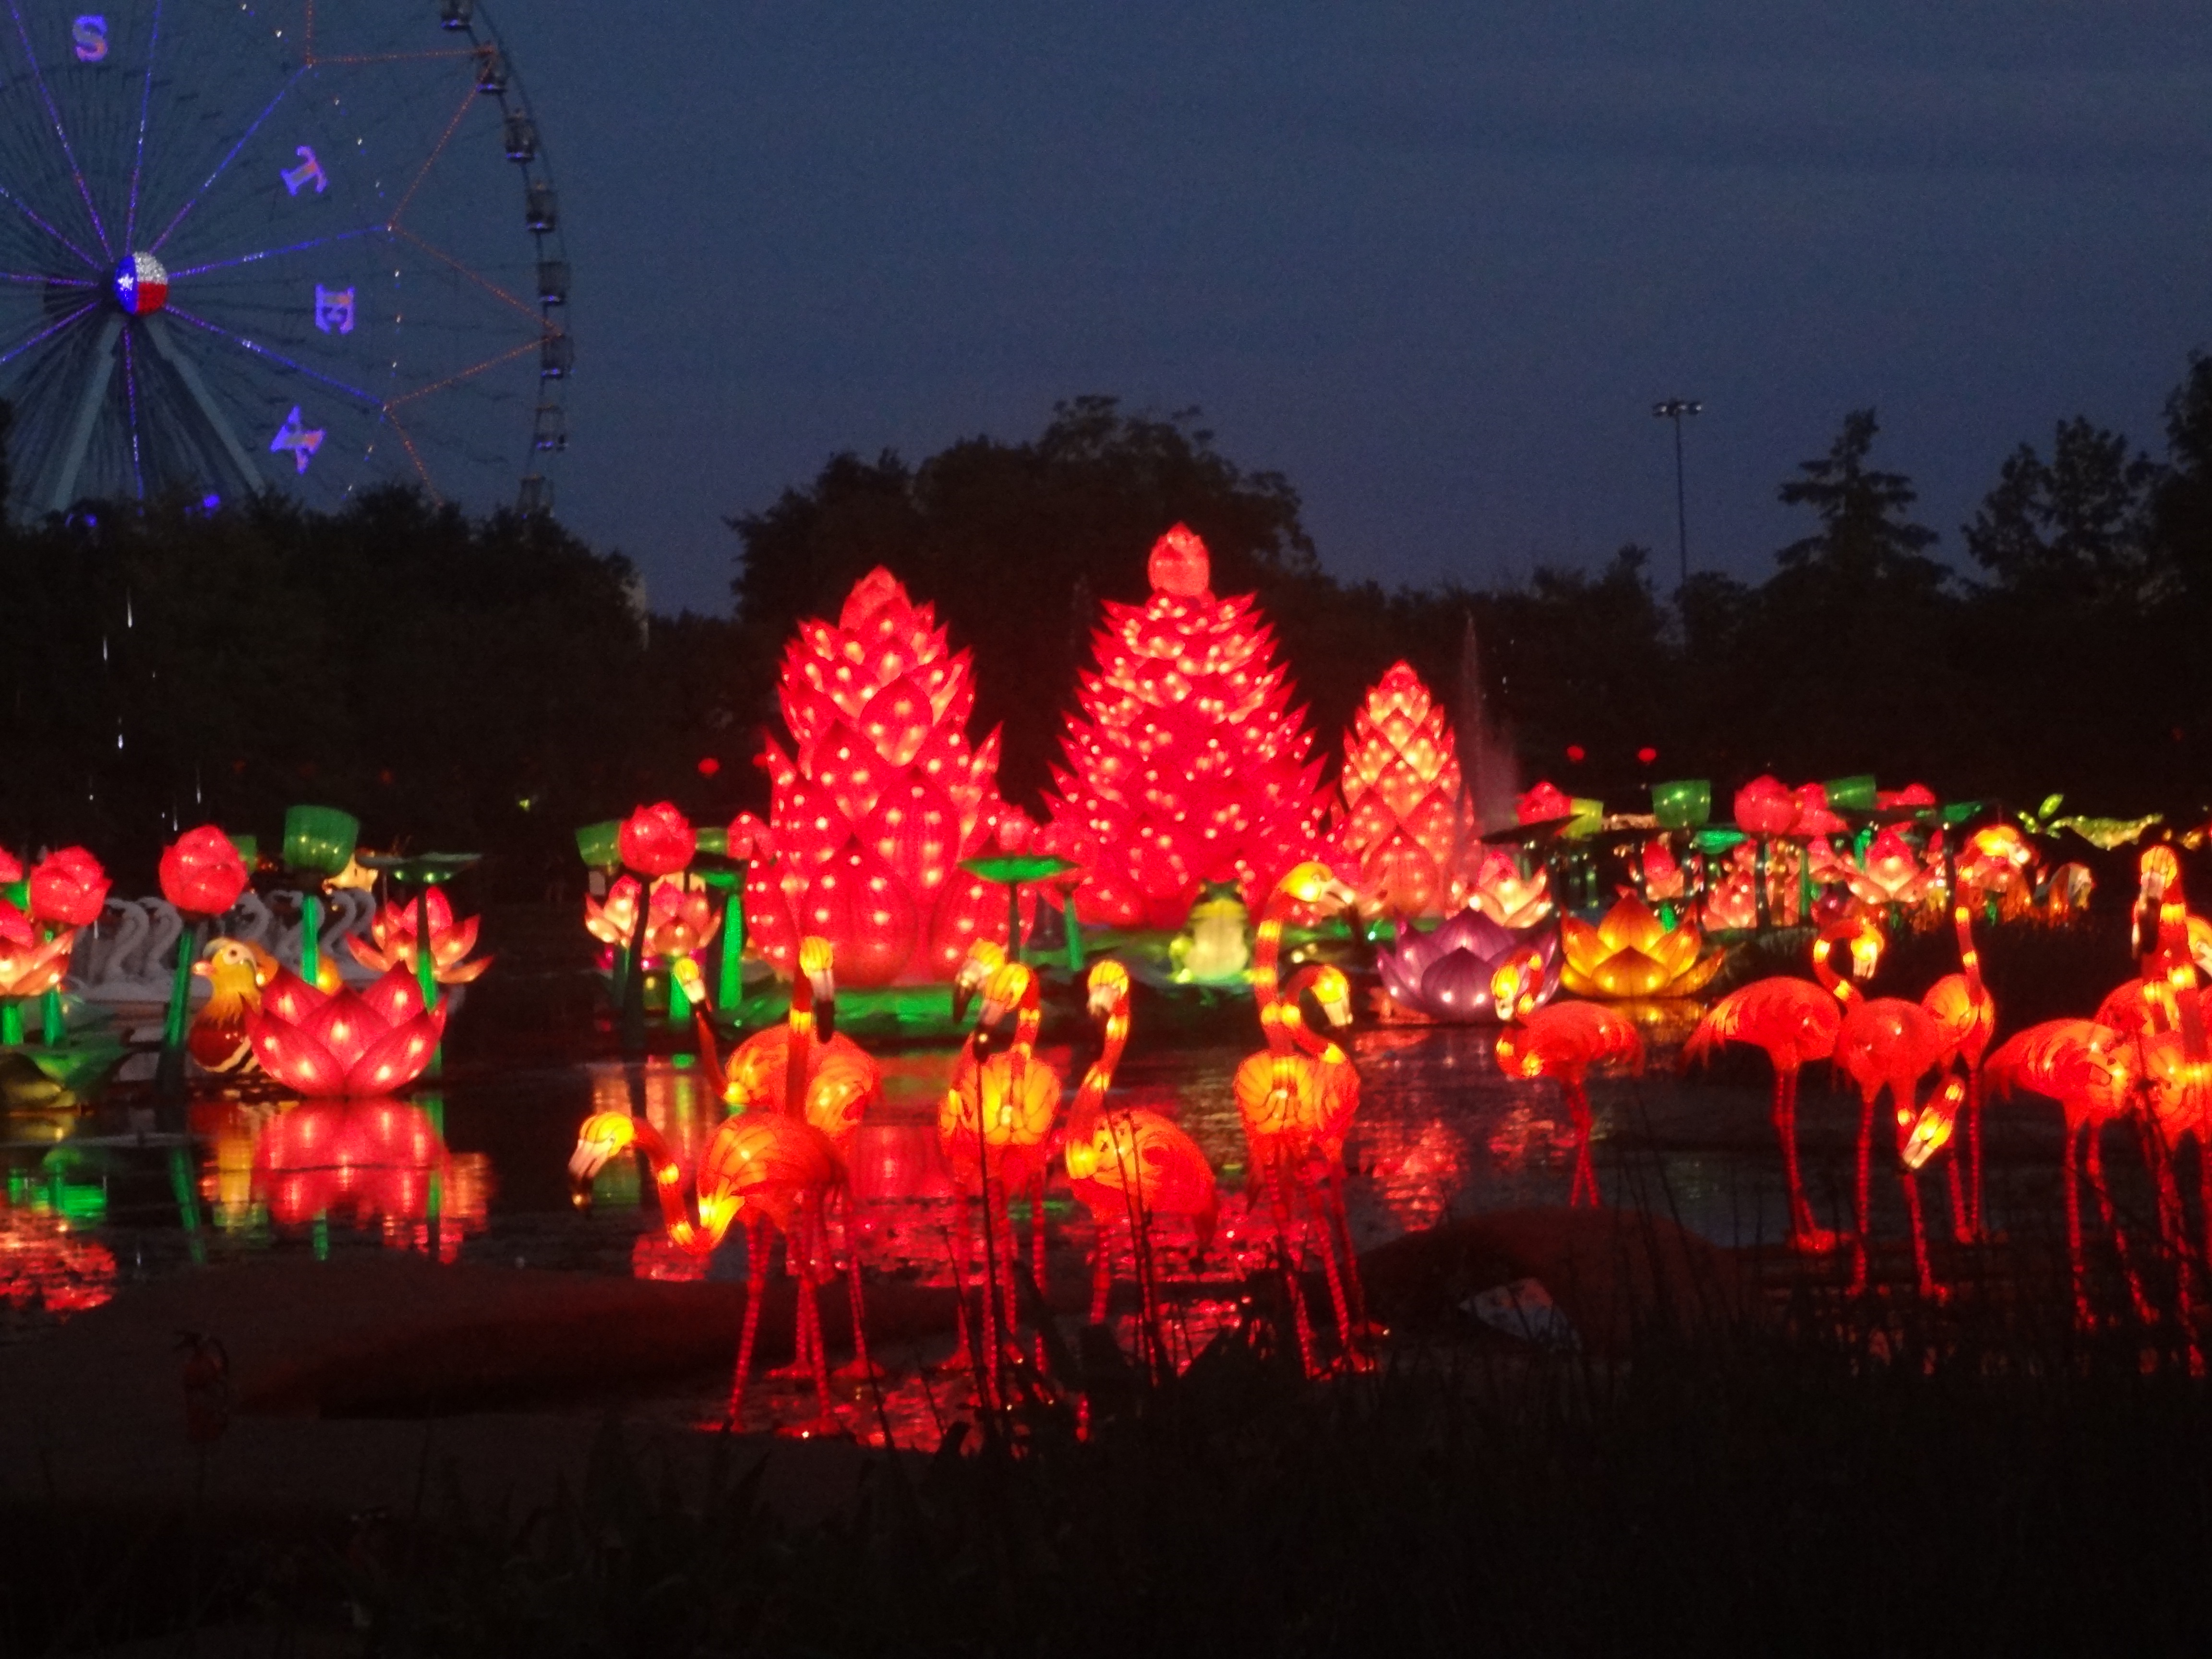 Lantern Festival Adds Cultural Spark To State Fair The Evergreen